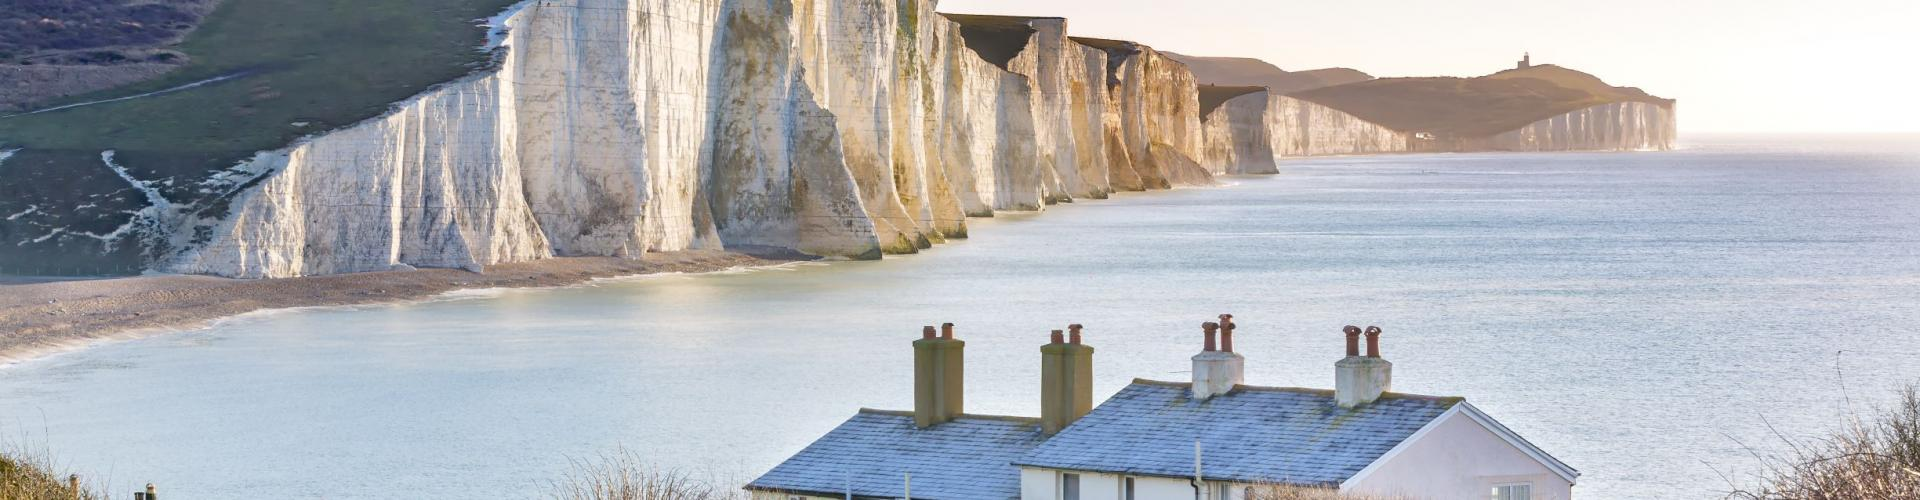 The Coast Guard Cottages Seven Sisters Chalk Cliffs just outside Eastbourne Sussex England UK. small